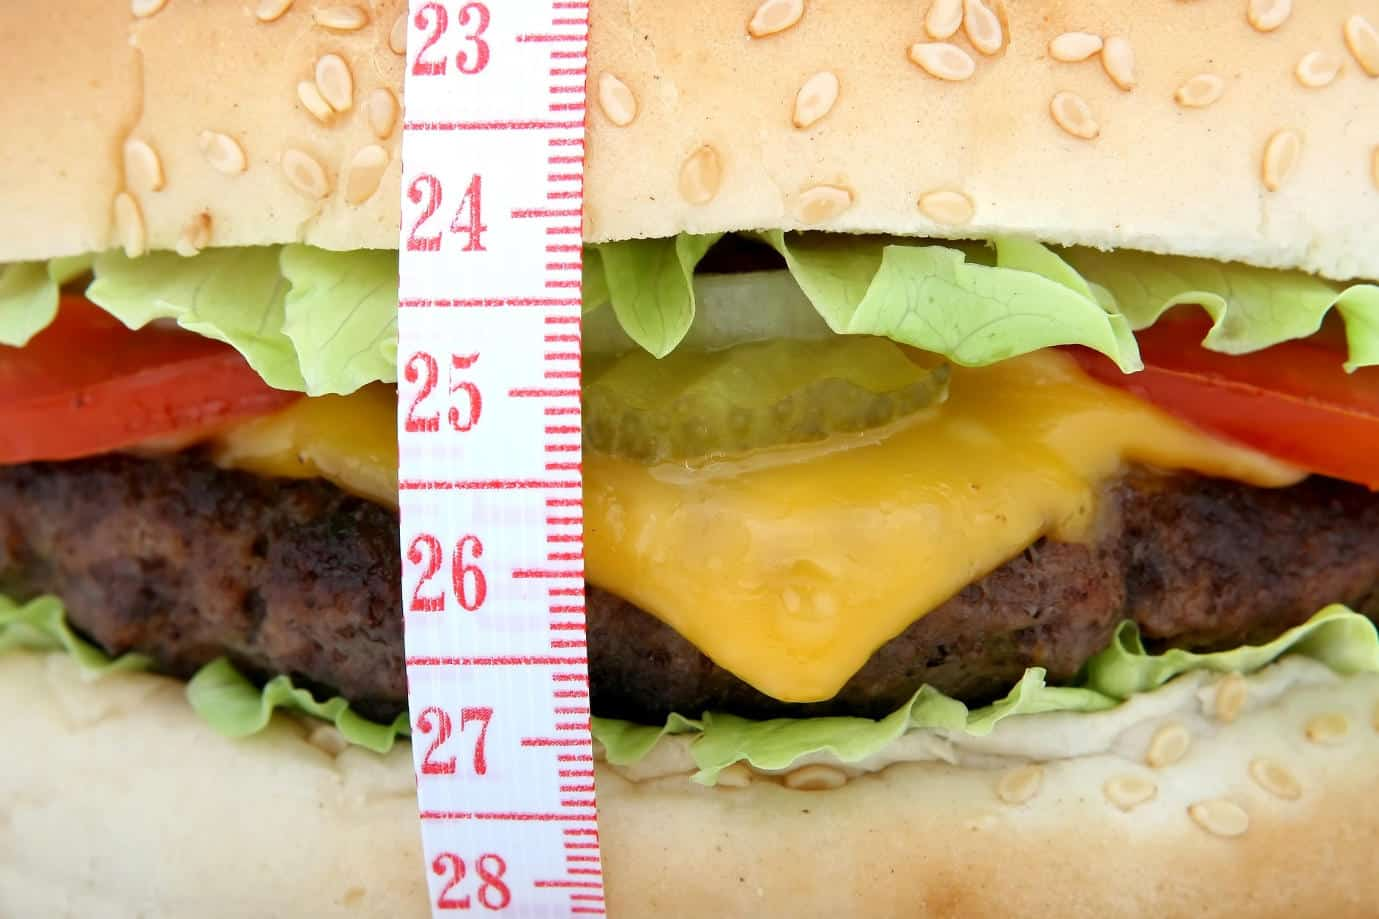 Global obesity rates expected to soar in next decade